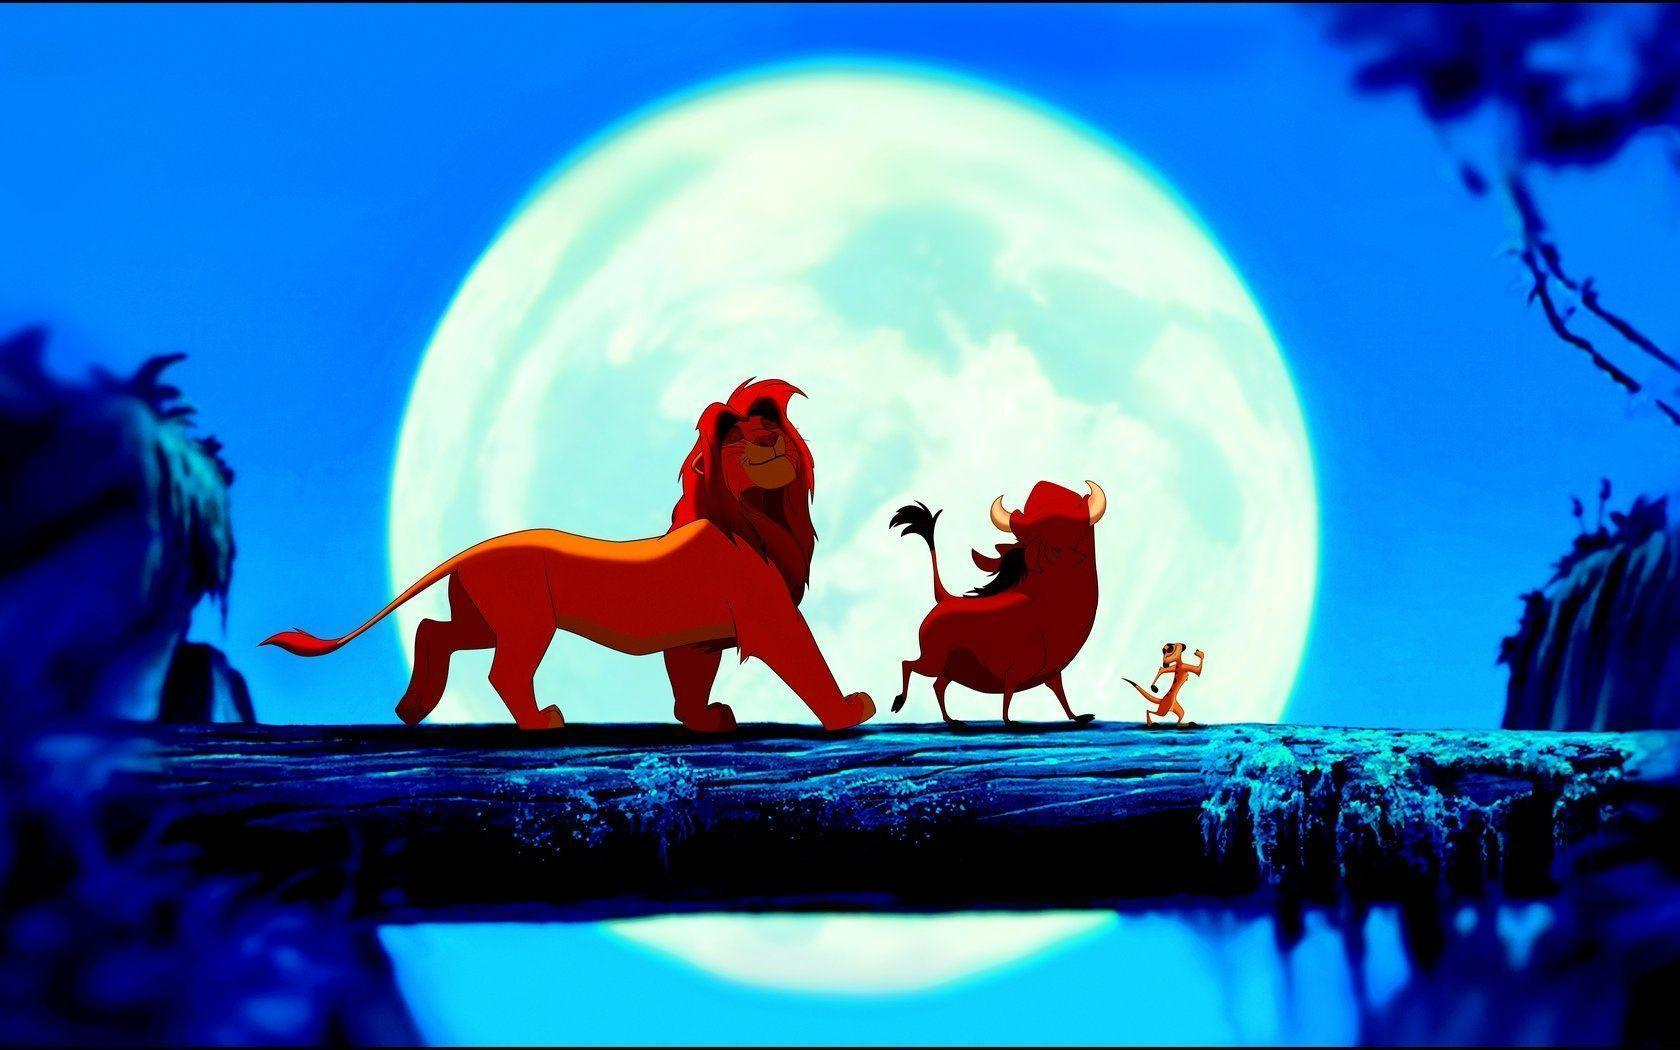 85 The Lion King HD Wallpapers